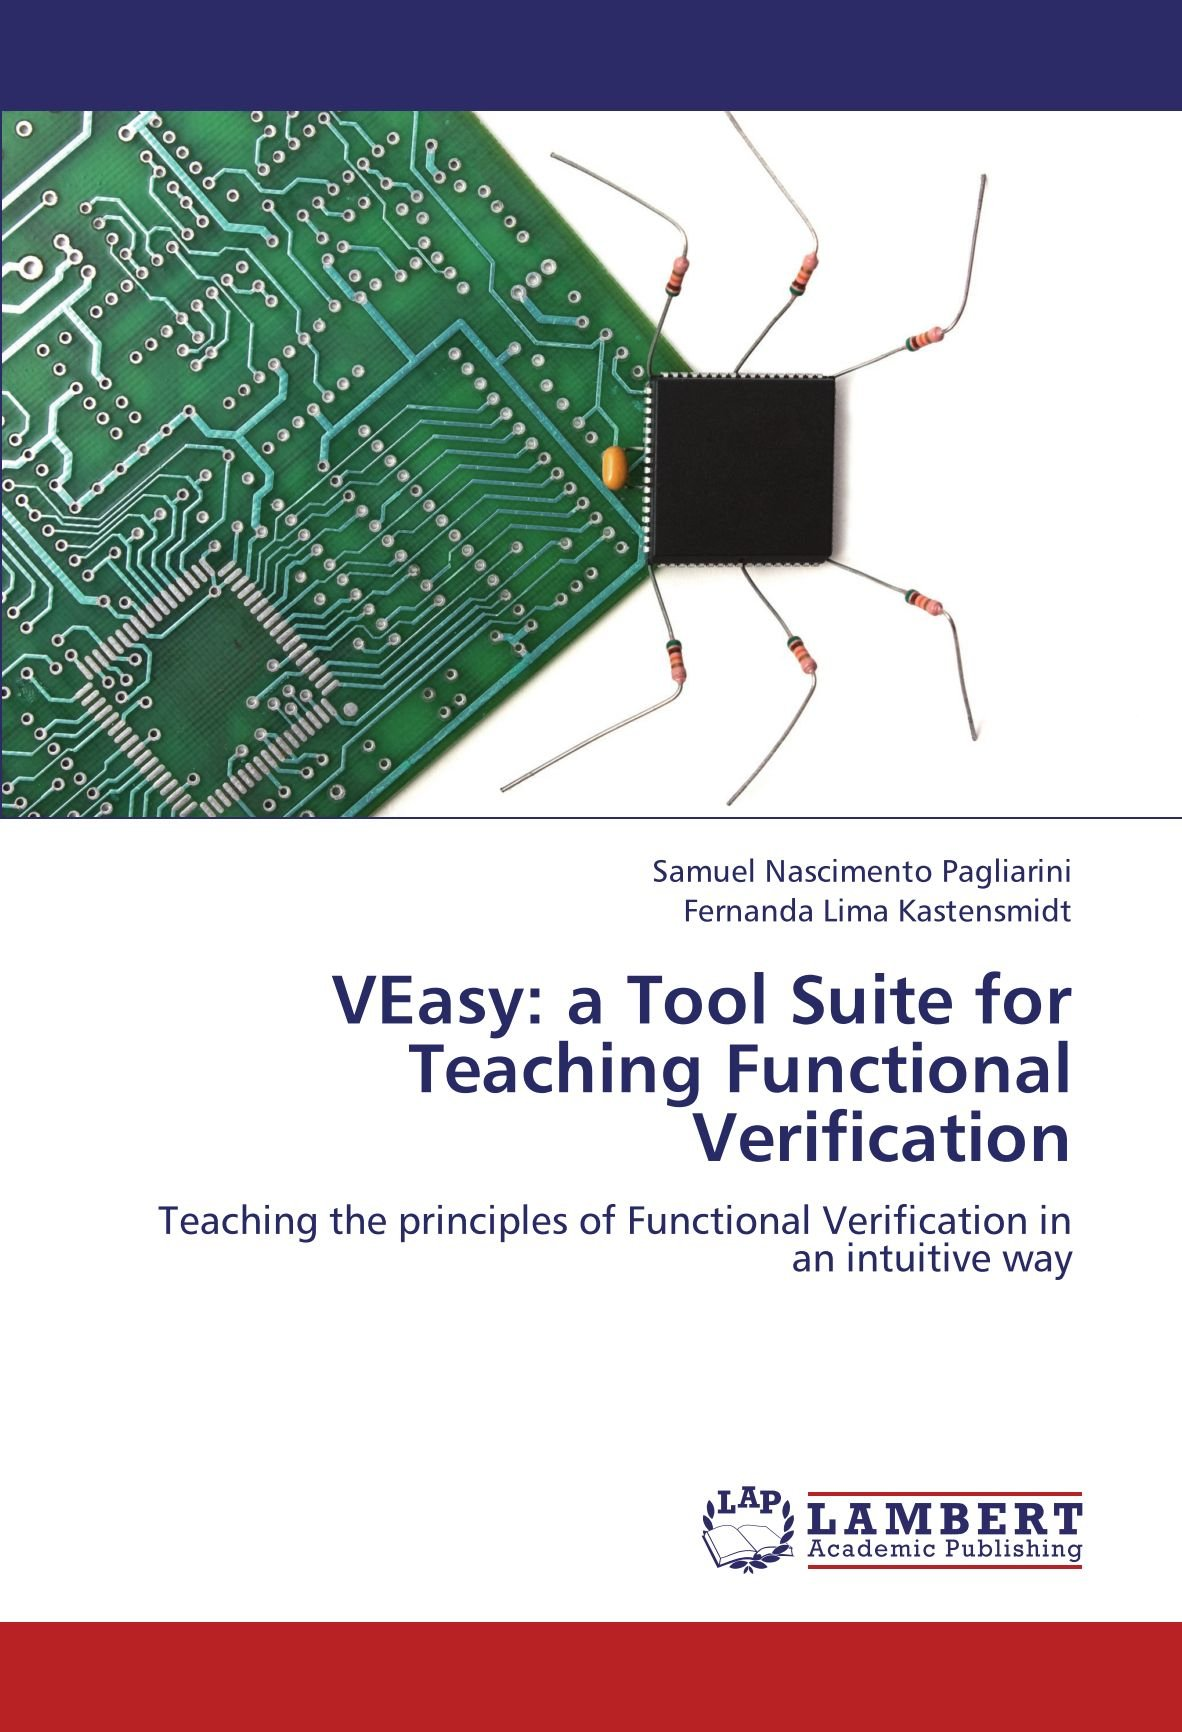 VEasy: a Tool Suite for Teaching Functional Verification: Teaching the principles of Functional Verification in an intuitive way pdf